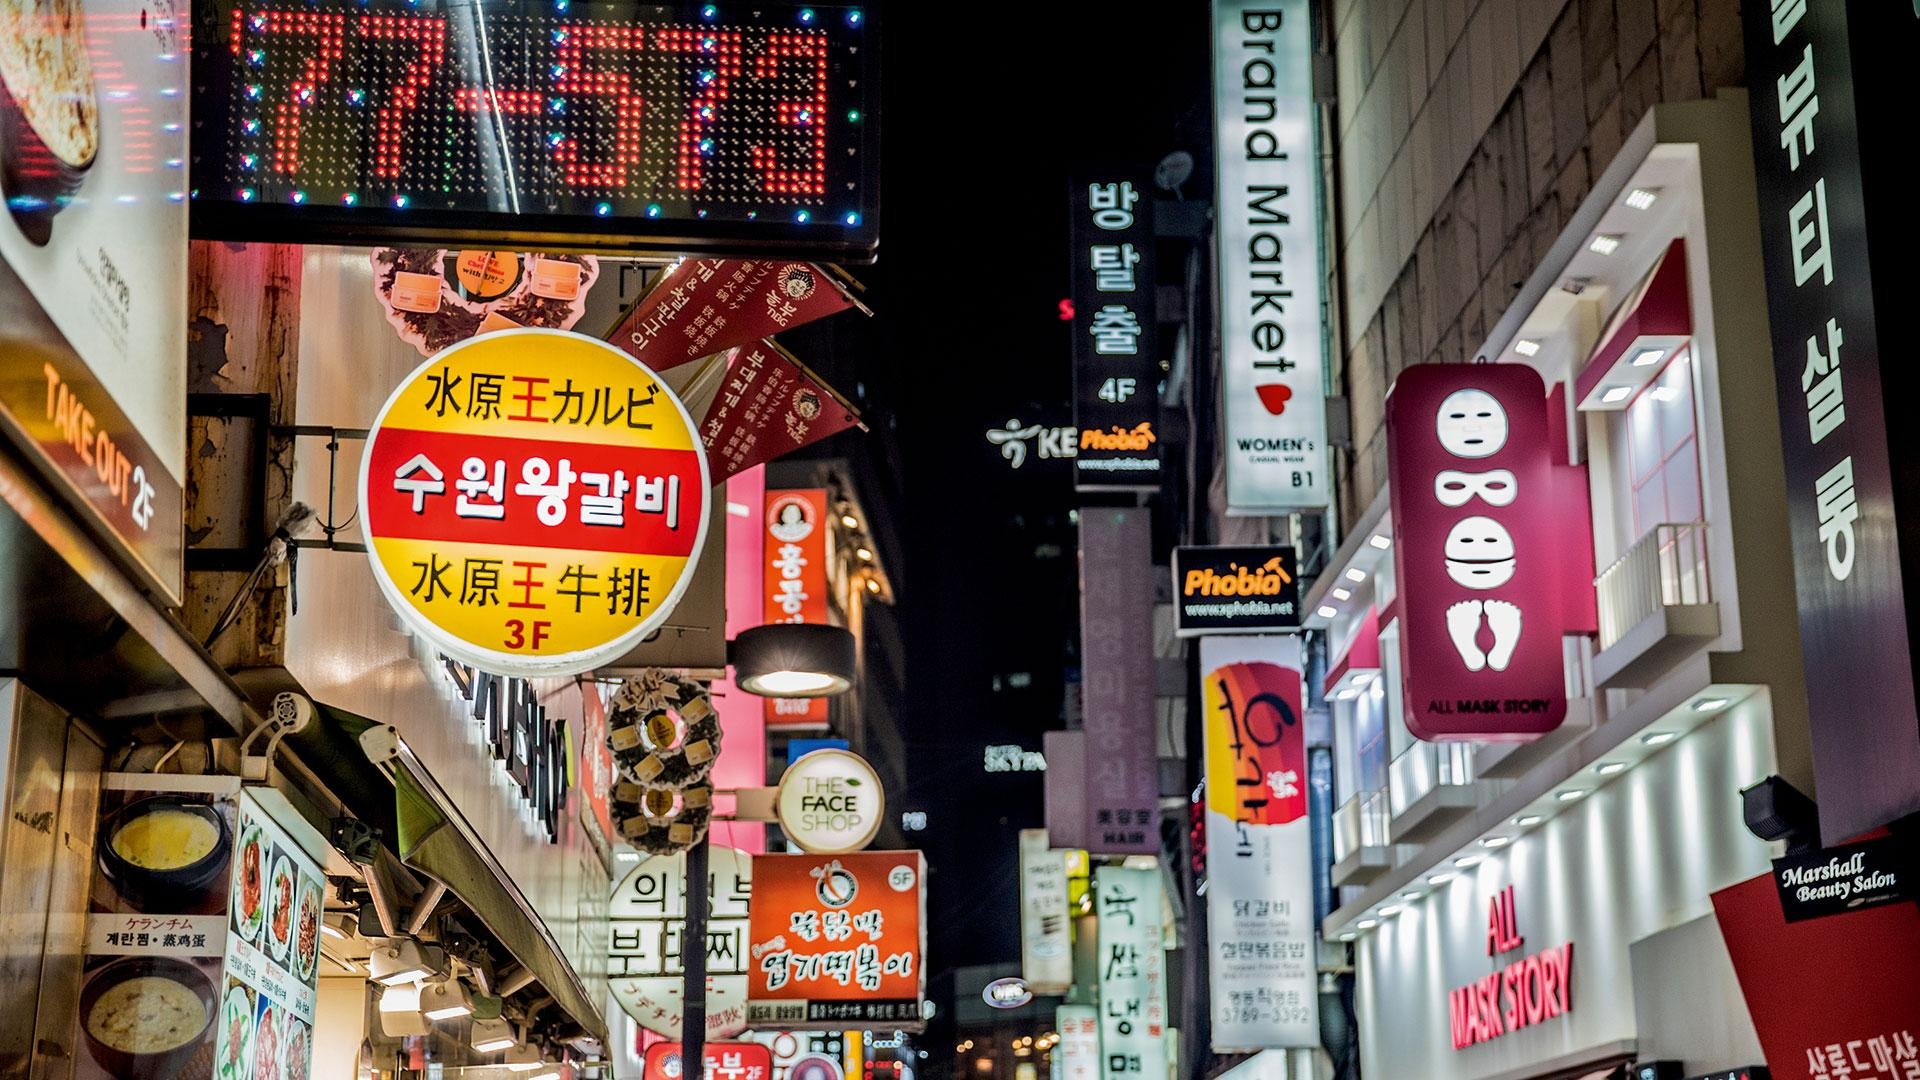 A street scene in Seoul, South Korea